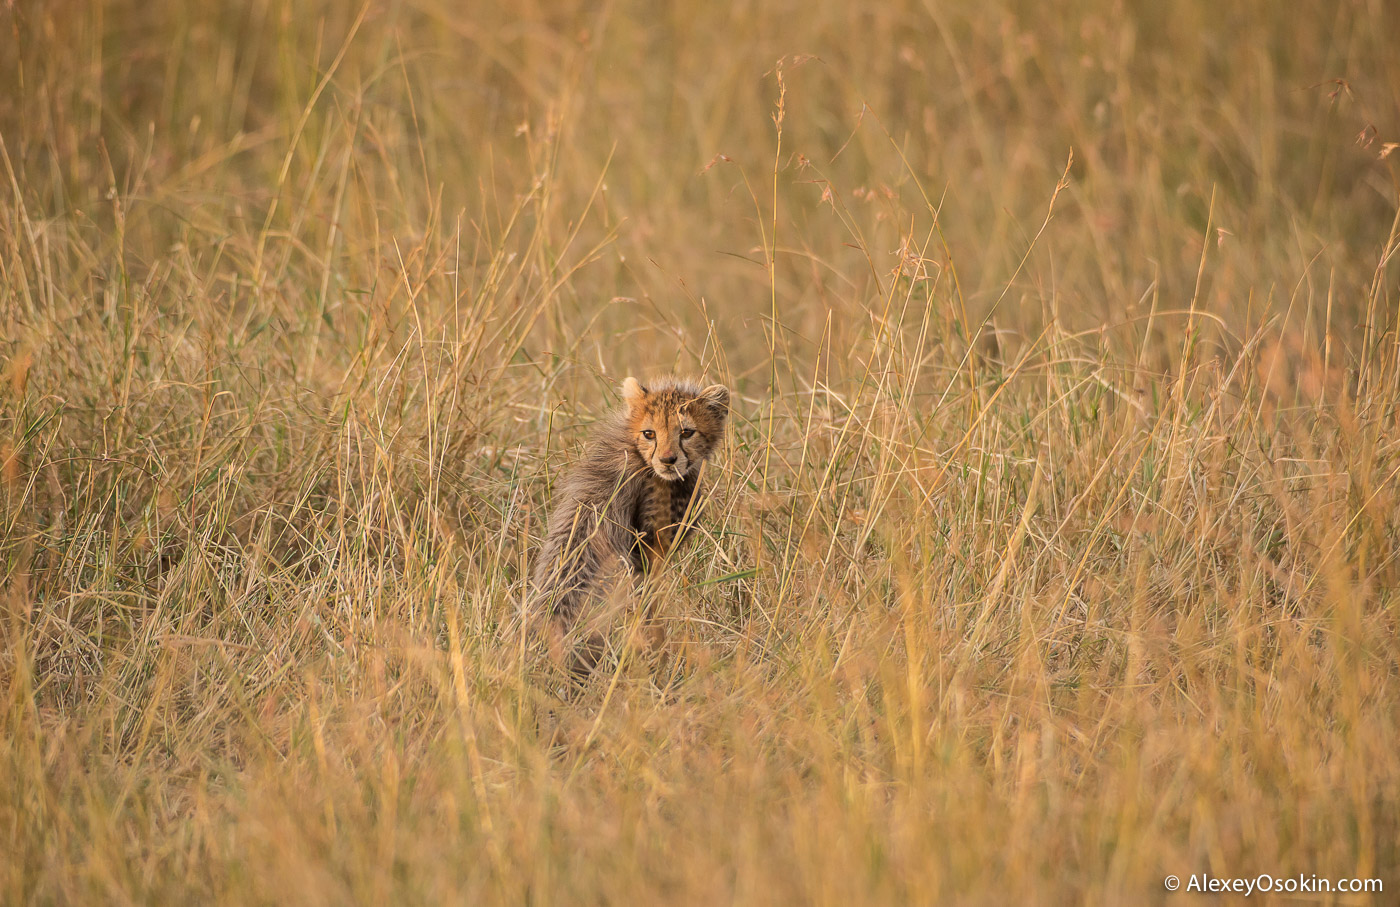 kenya-cheetah2-ao, aug.2015.jpg